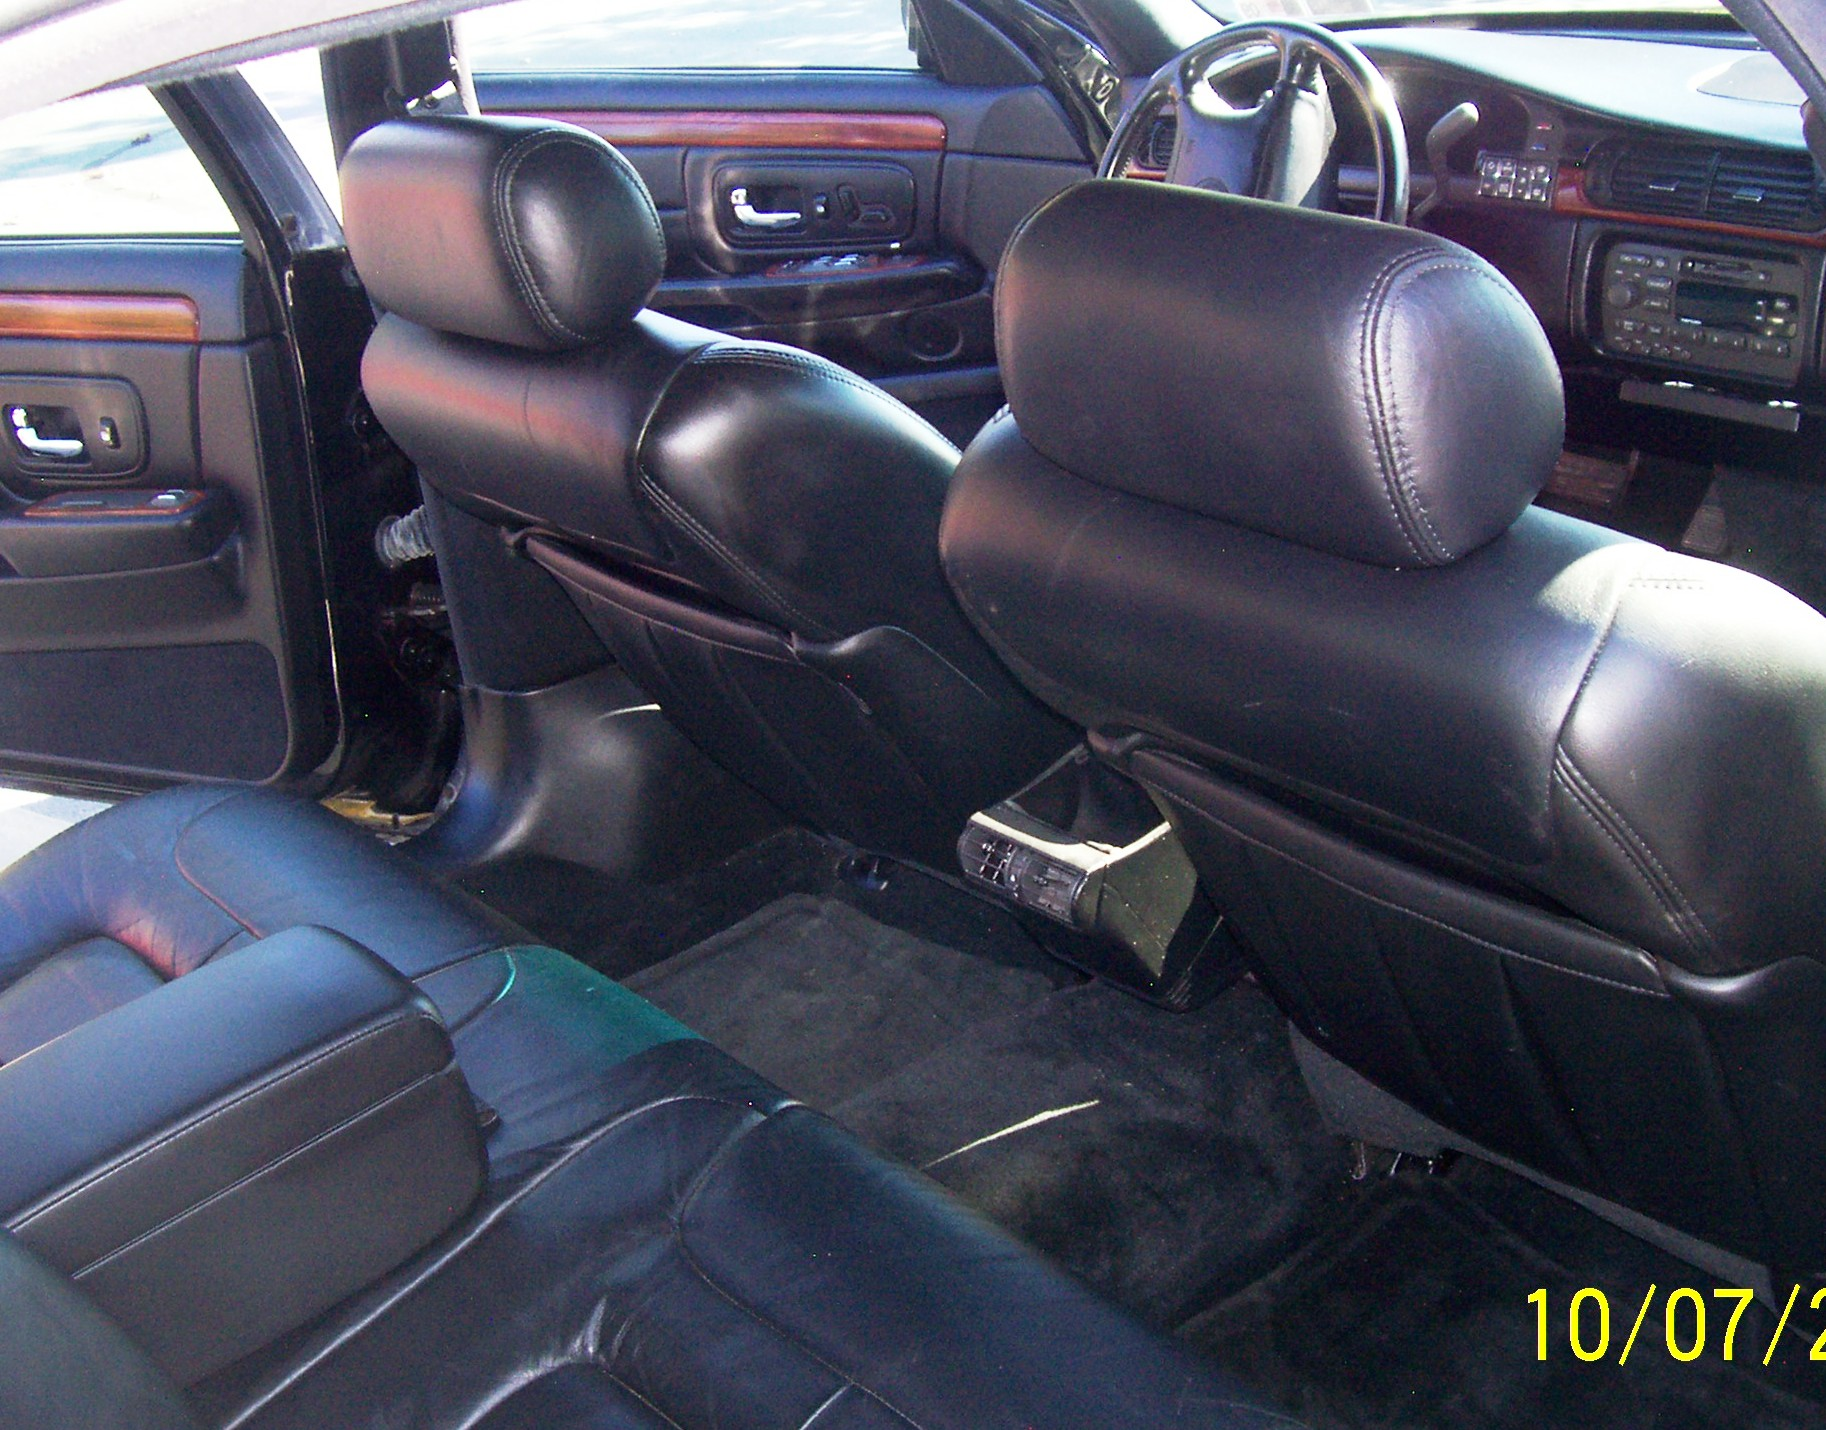 hight resolution of  for sale 1998 cadillac deville 3 995 00 610 389 0693 ask for eric